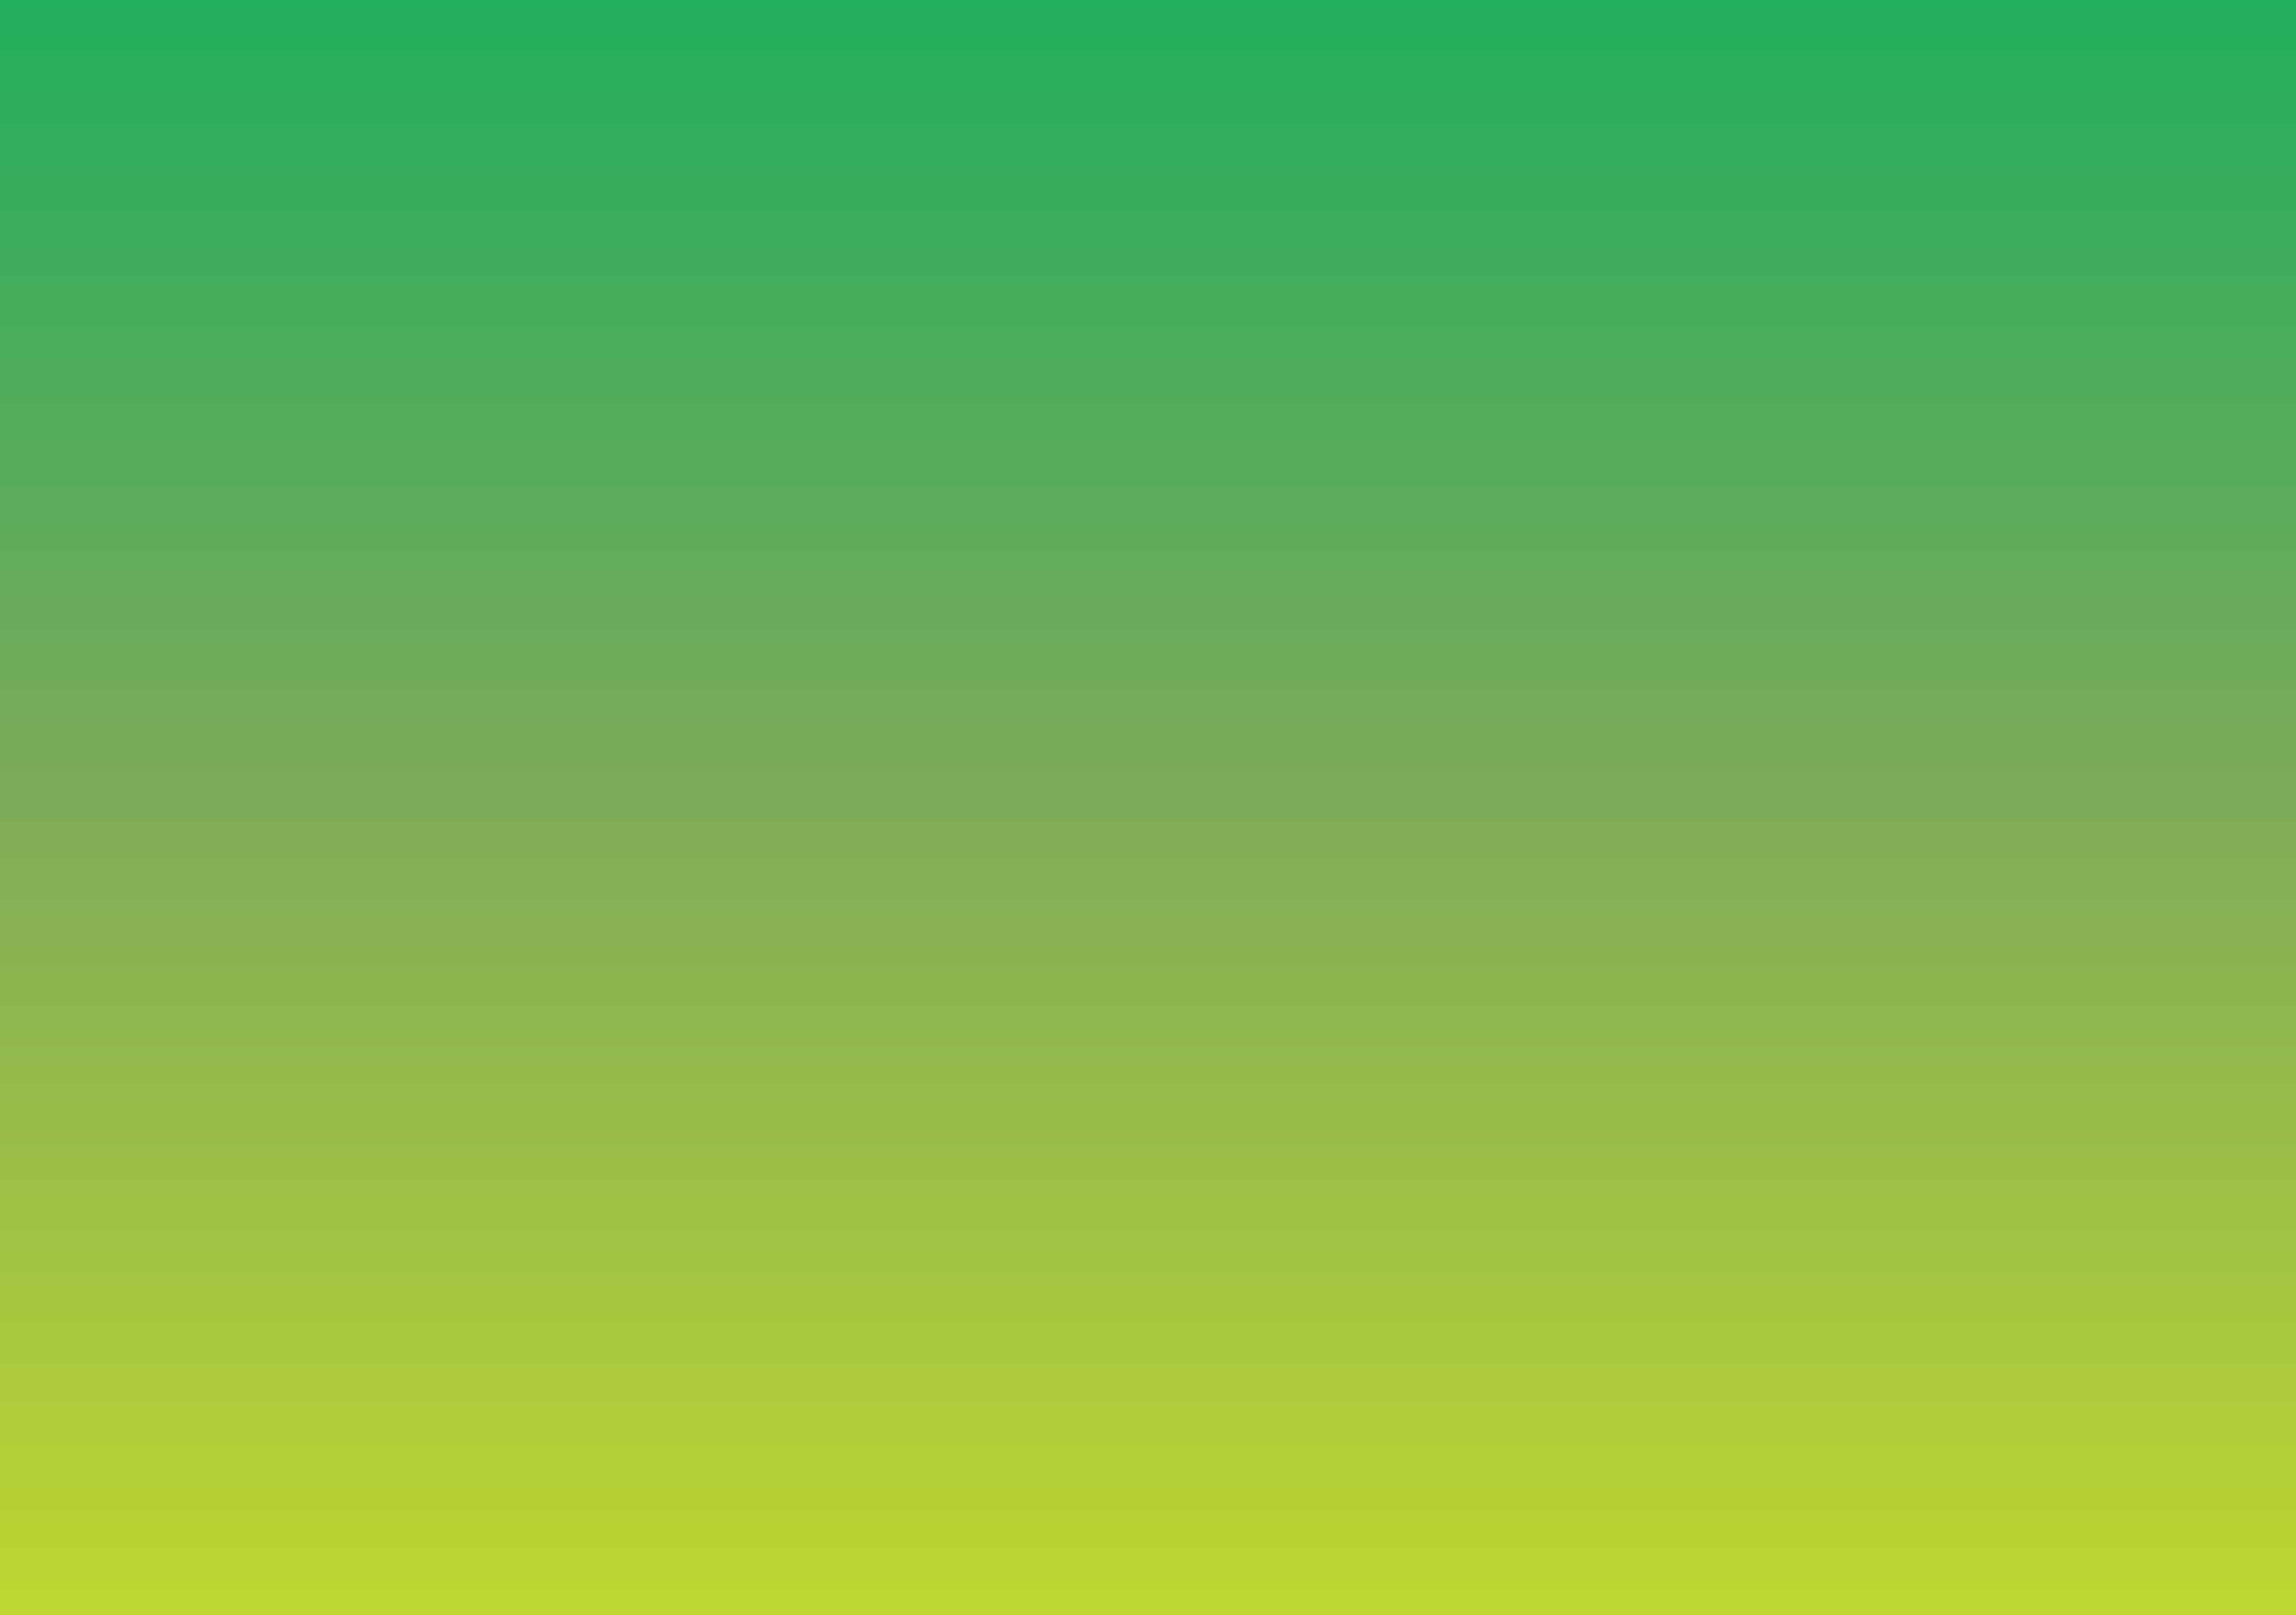 green-yellow-gradient-background